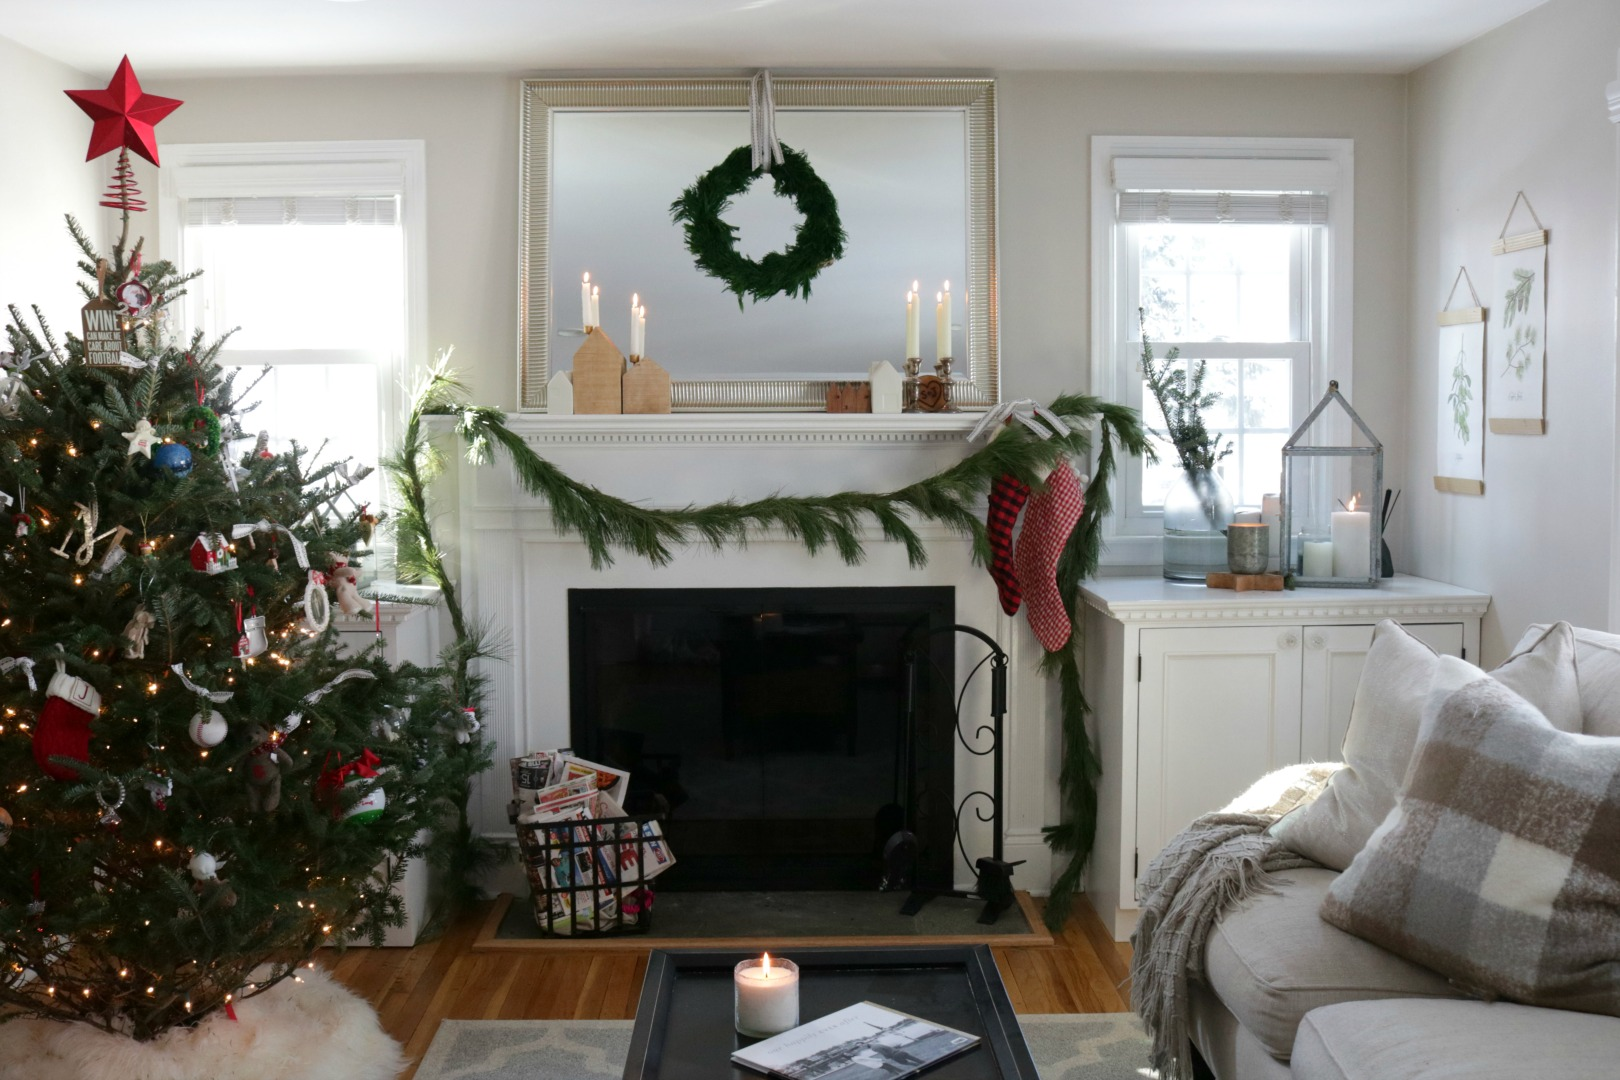 Christmas Mantel Ideas.Friday Favorites Starts With Easy Tips To Refresh Your